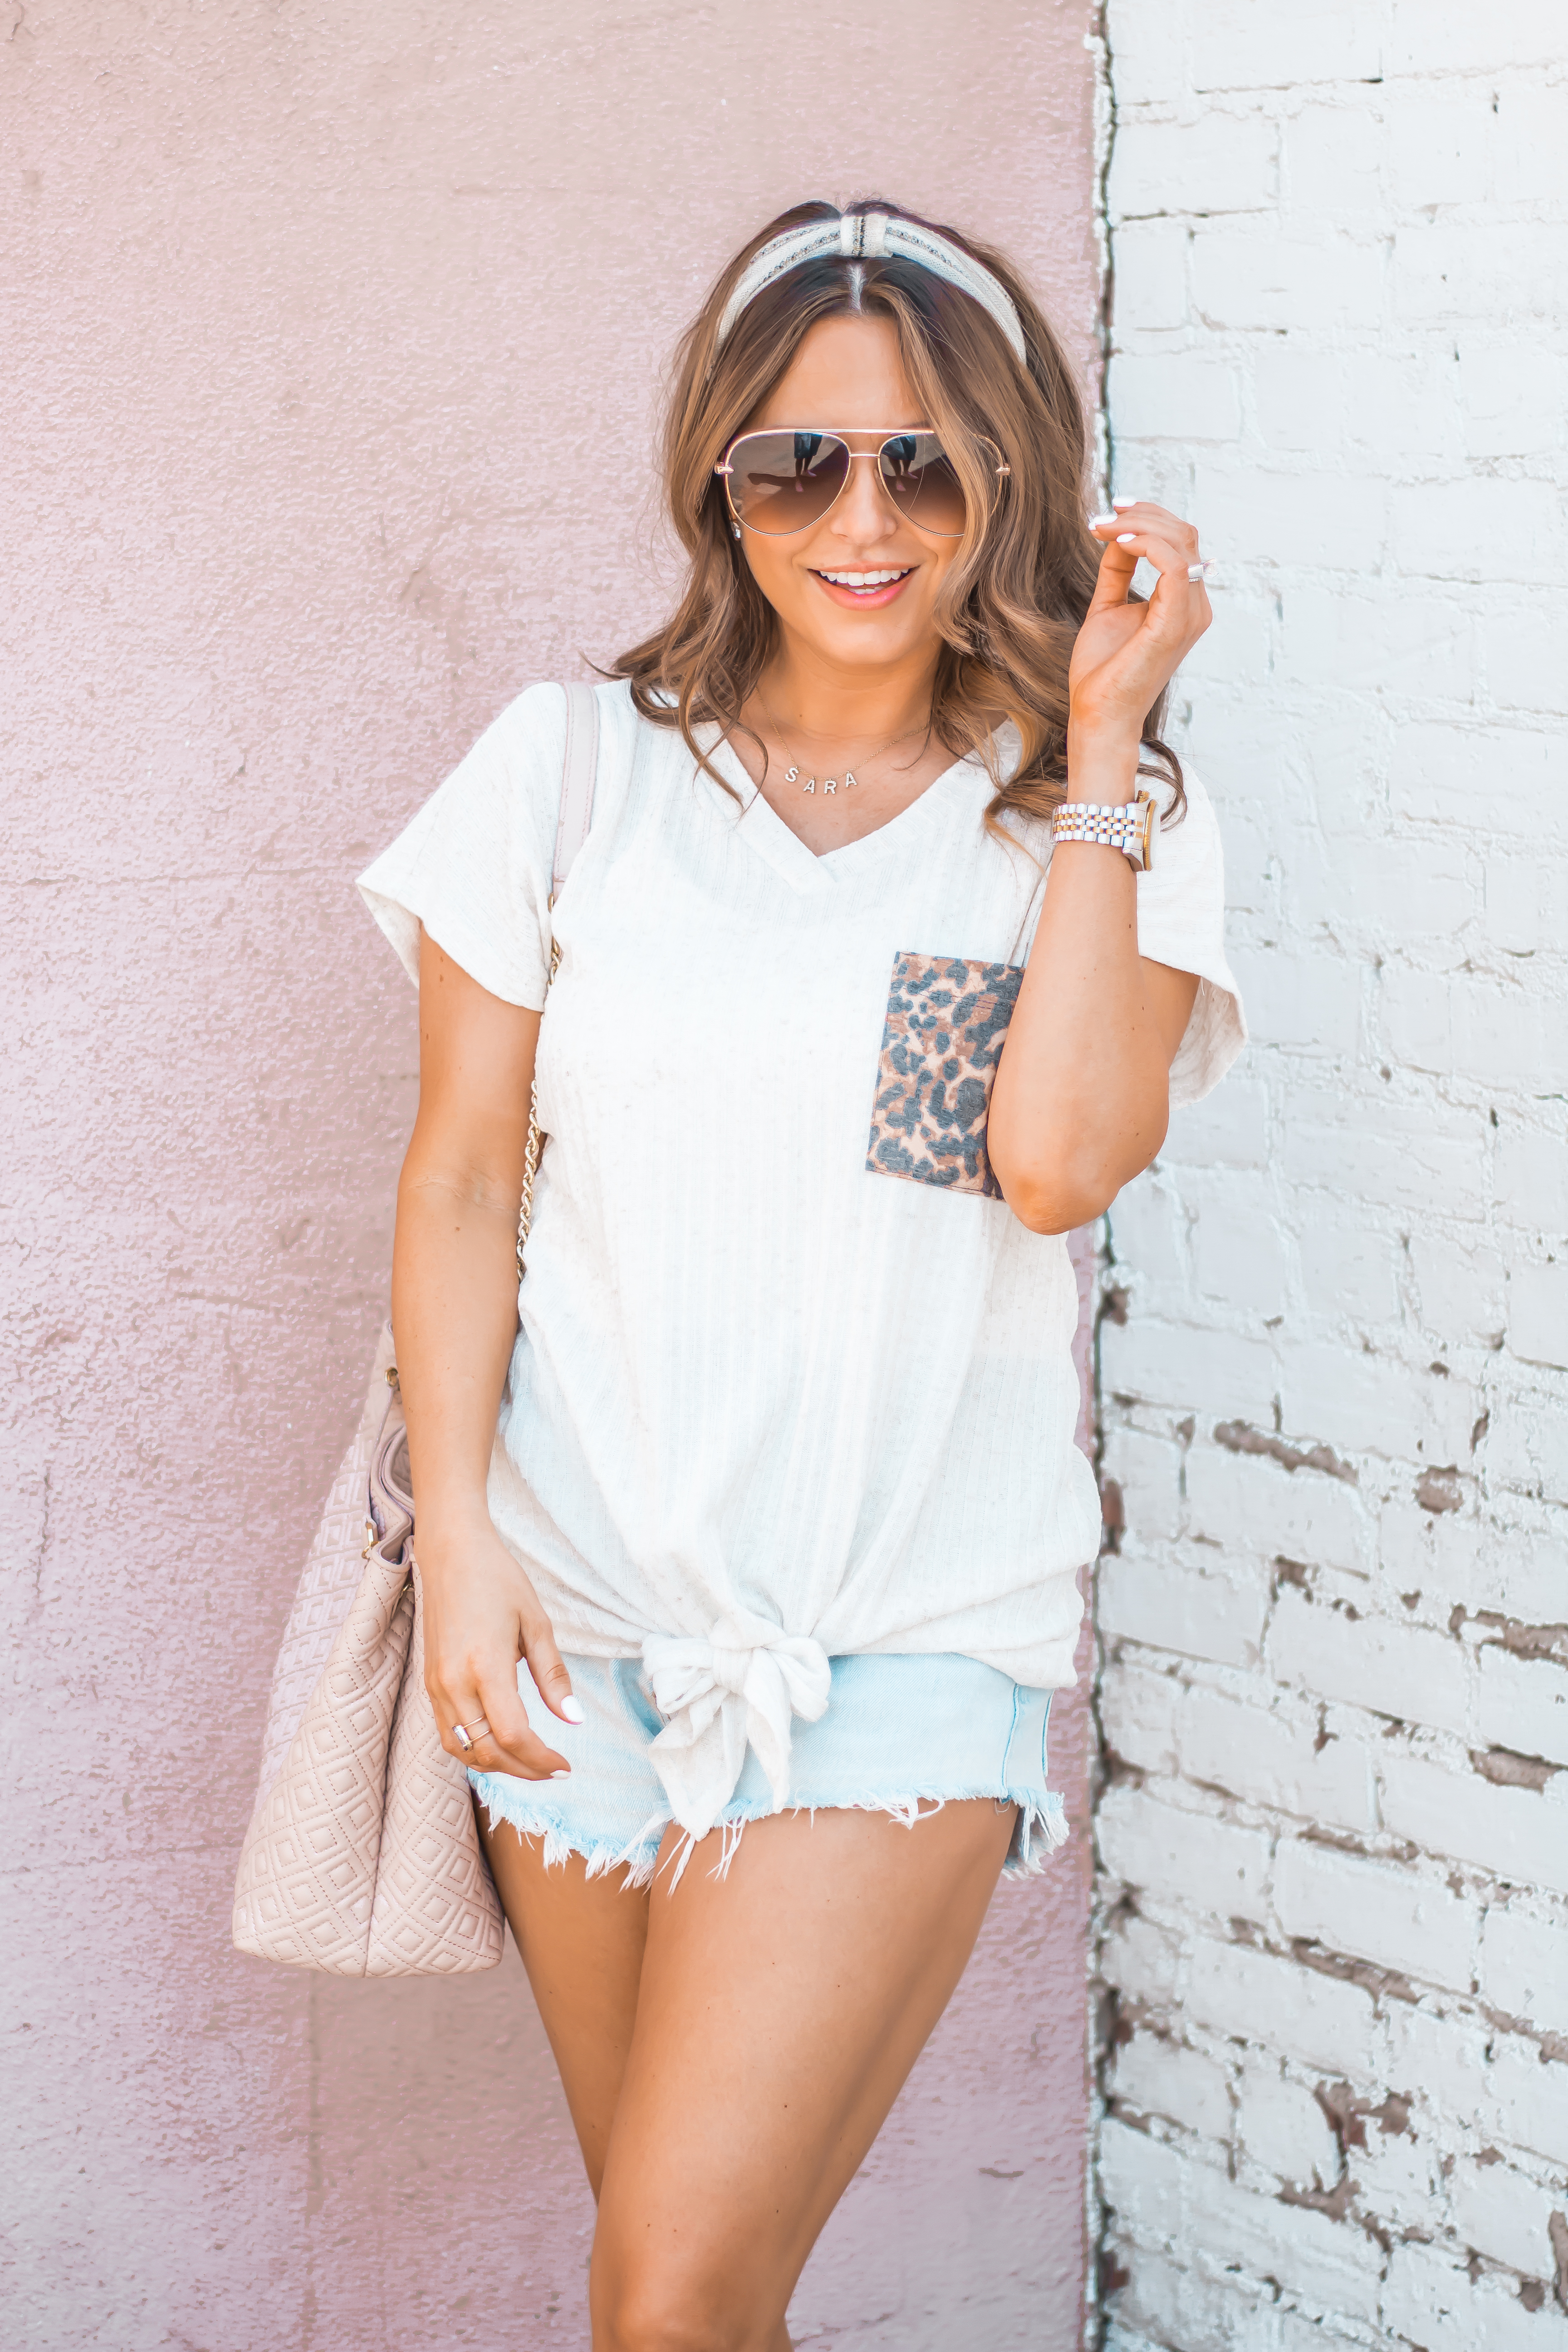 Women's Fashion-Summer Fashion-Summer Outfit Inspiration-Sabby Style-Omaha Blogger-Leopard Pocket Top-The Style Bar Boutique-Cutoff Shorts-Espadrille Wedges-Marc Fisher Wedges-Tory Burch Fleming-Quay Sunglasses-Headband Trend-Omaha-Nebraska-Midwest Blogger-6